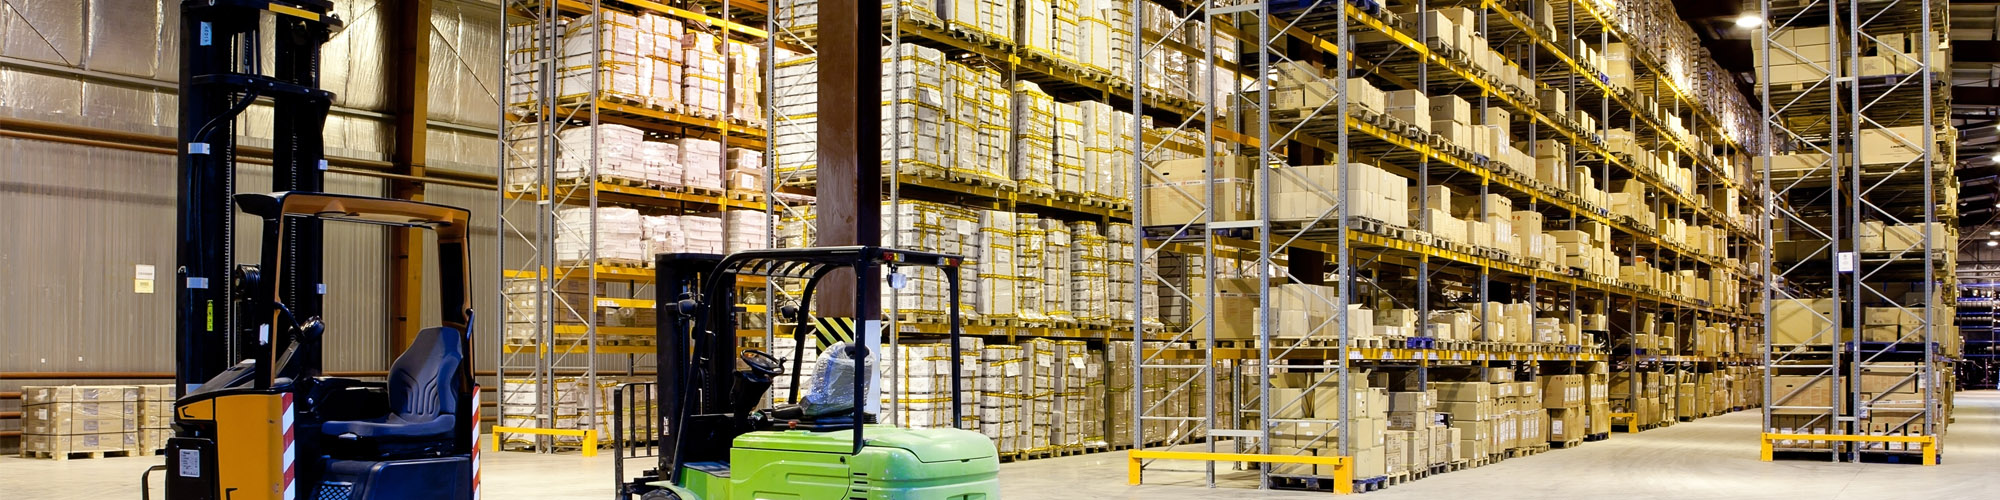 Commercial Real Estate, Warehouse for lease, Warehouse for